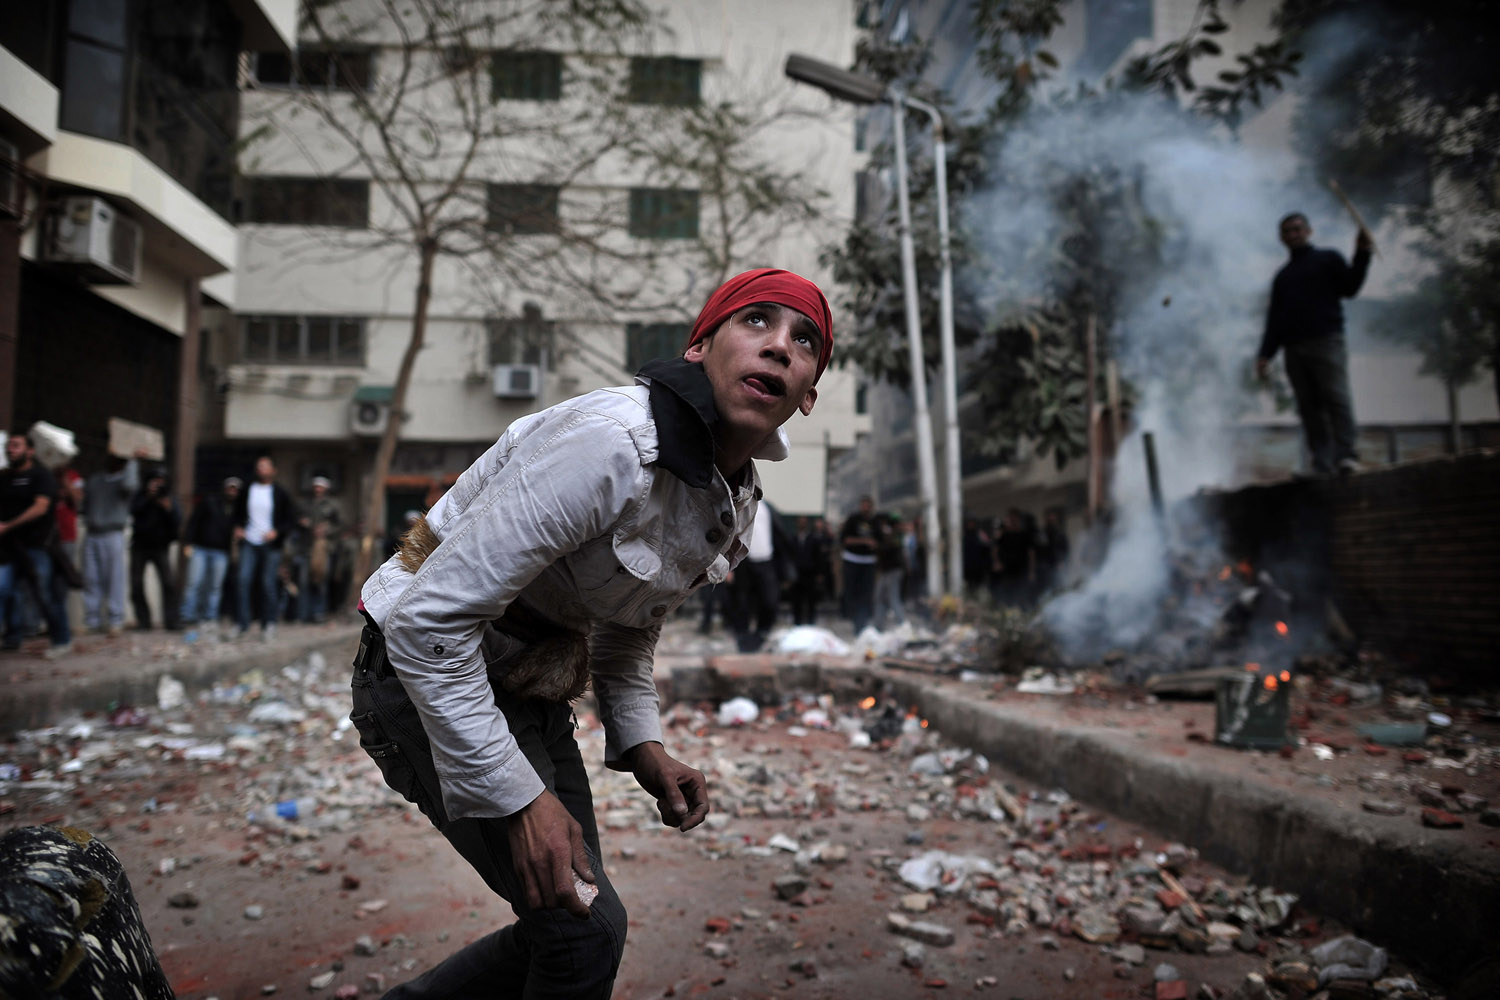 Feb. 3, 2011. Young anti-Mubarak Egyptians throw stones in Tahrir Square in Cairo.